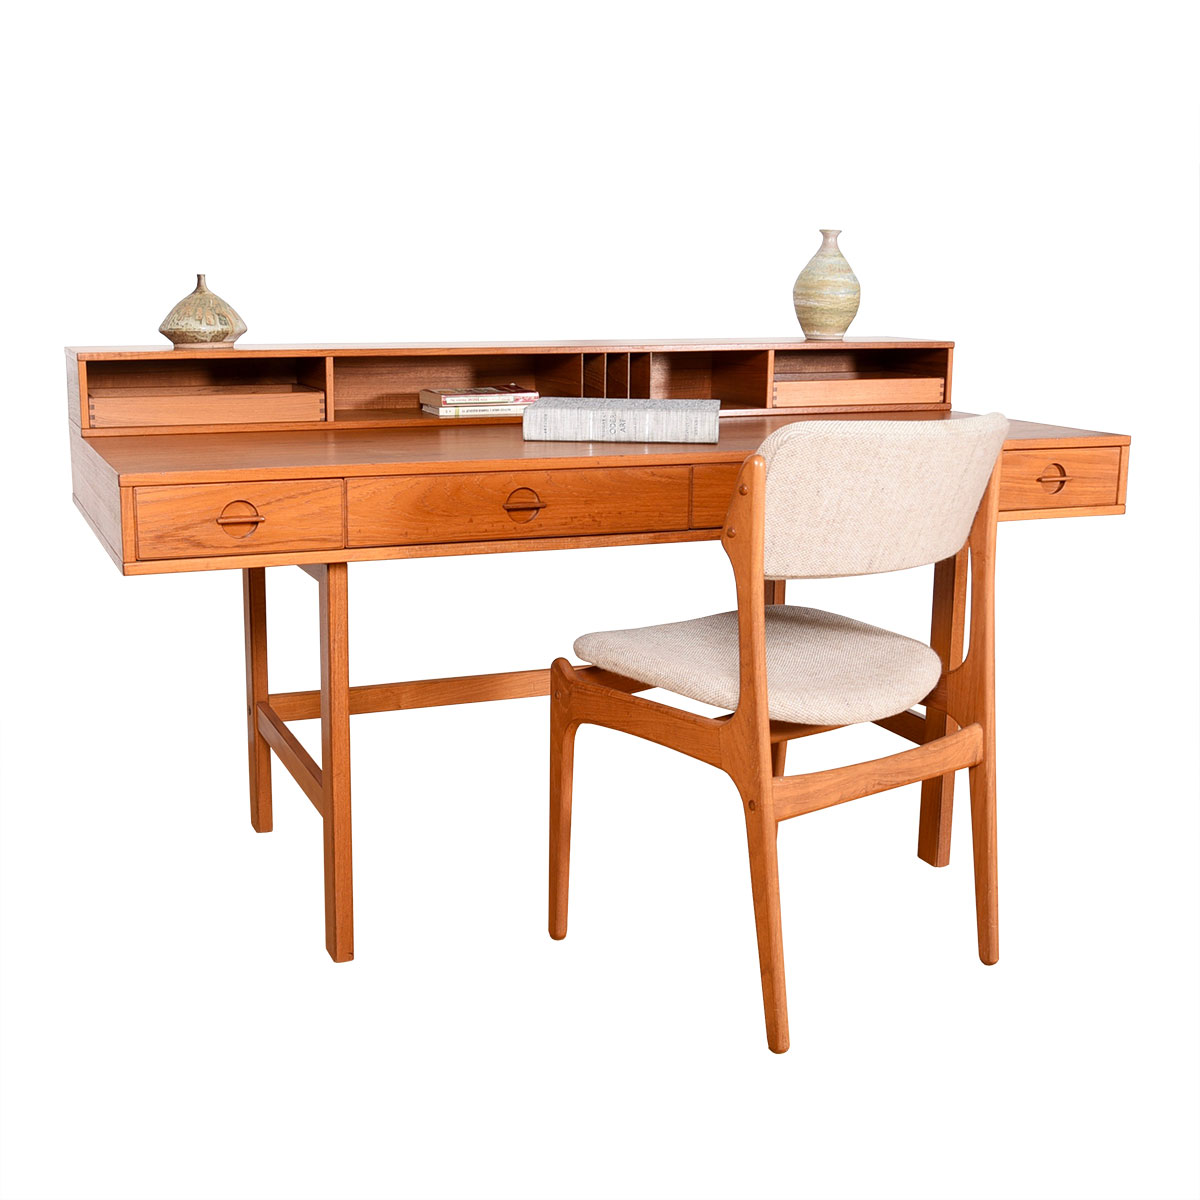 'Flip-Top' Danish Modern Teak Partner's Desk by Lovig